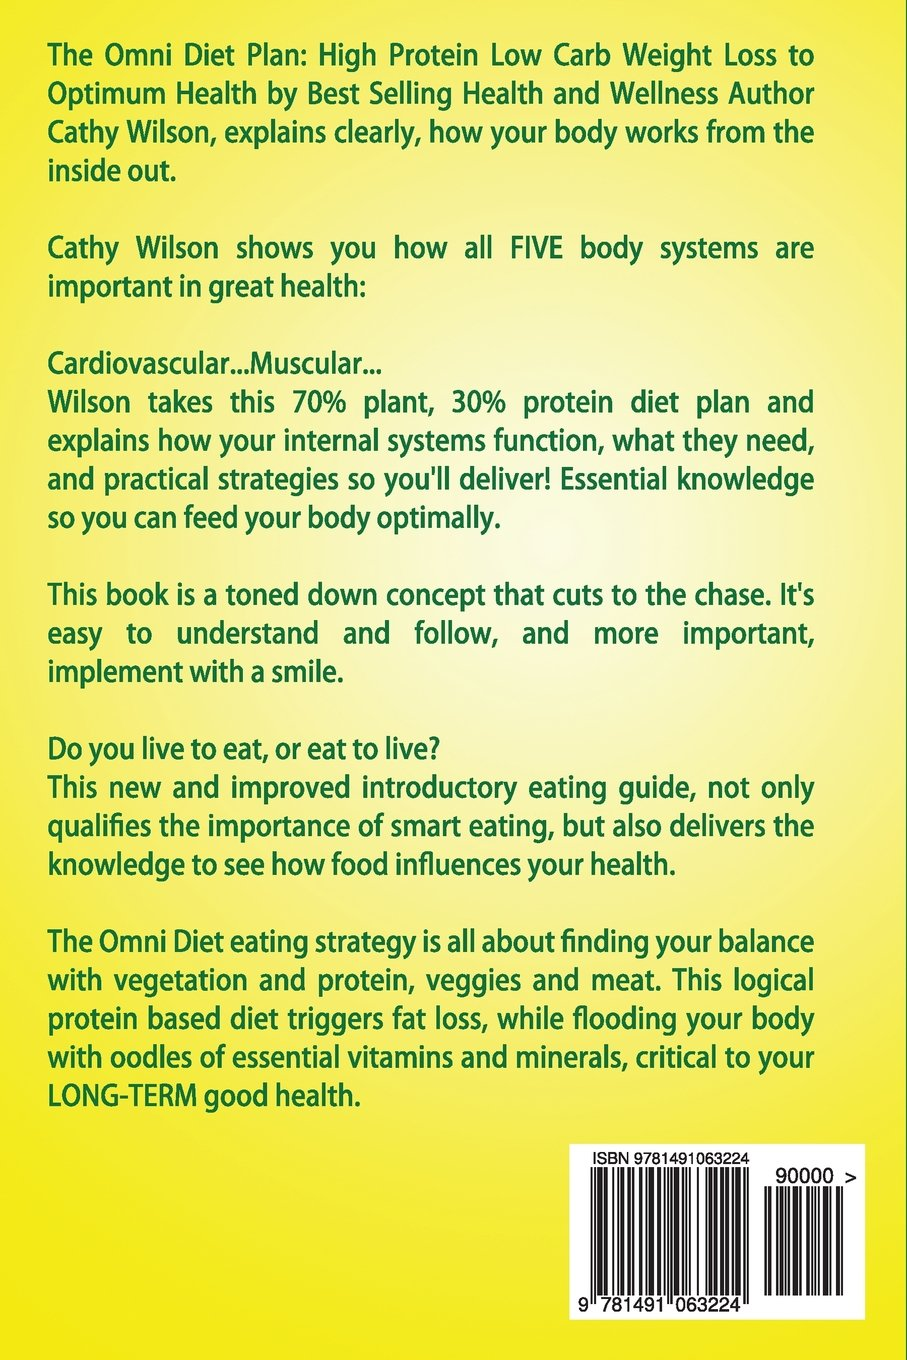 The Omni Diet Plan High Protein Low Carb Weight Loss To Optimum Health Cathy Wilson 9781491063224 Amazon Books